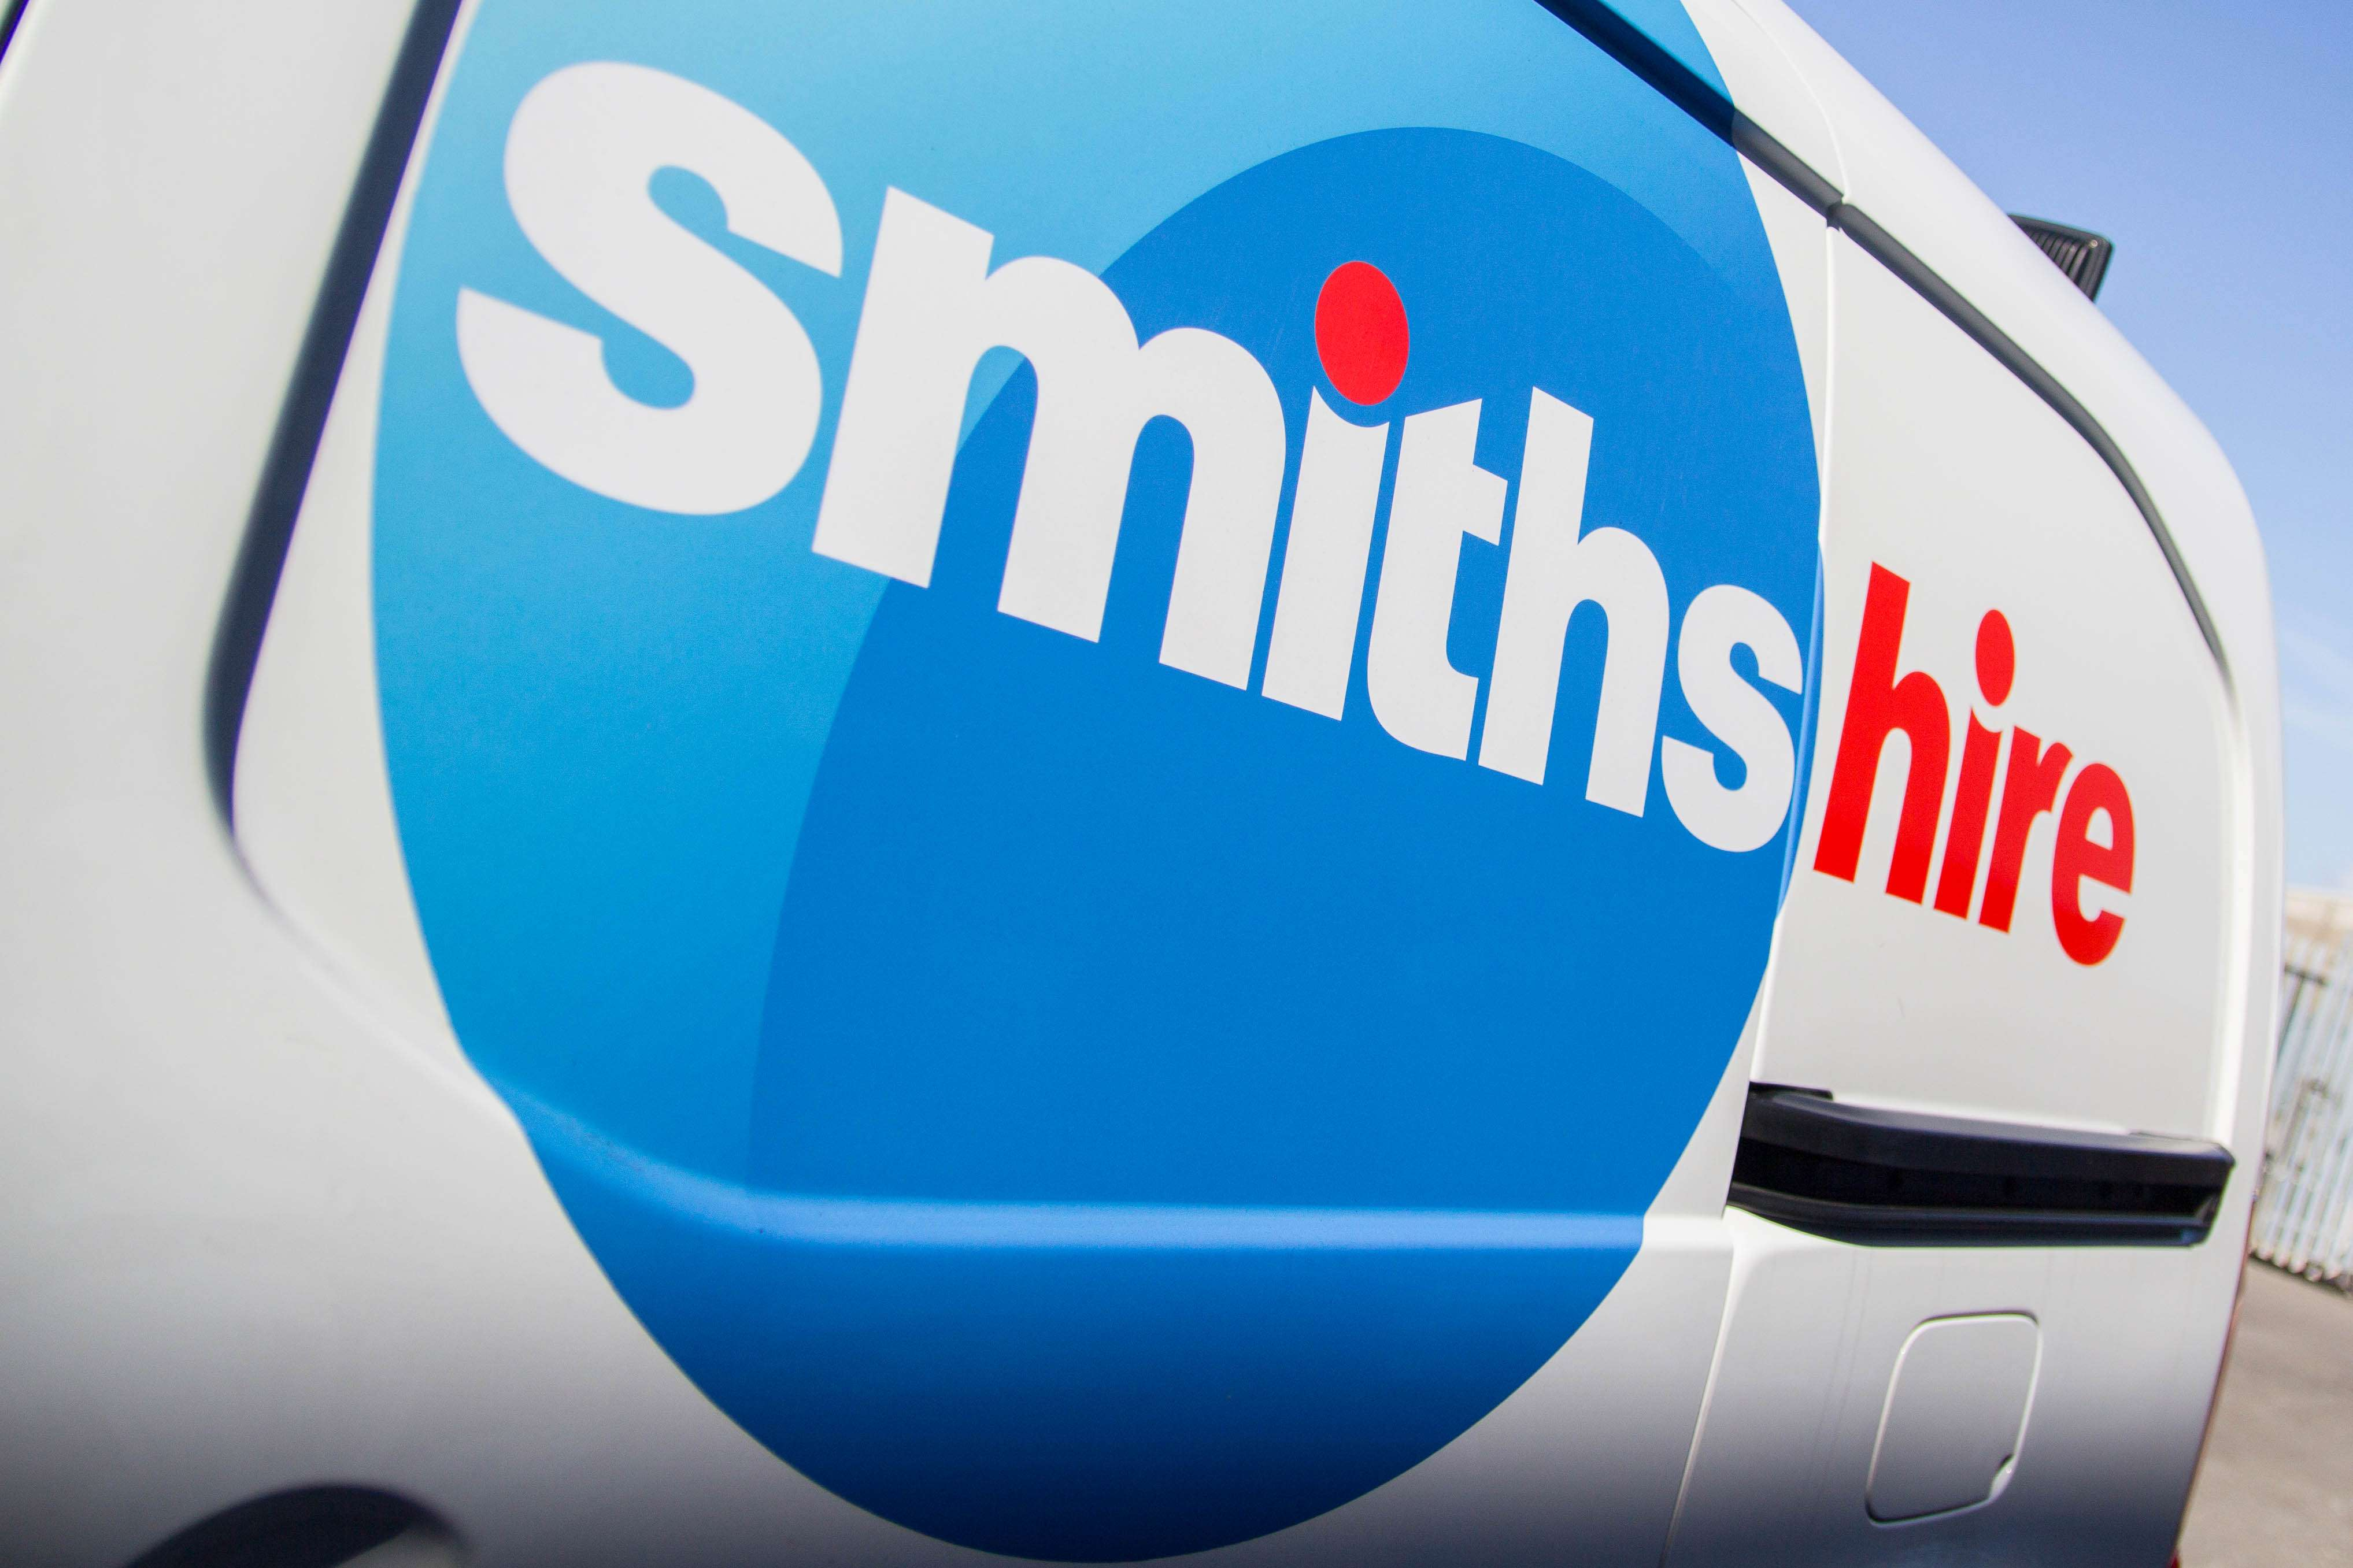 Smiths Equipment Hire • Equipment Hire and Tool Hire • Smiths Hire